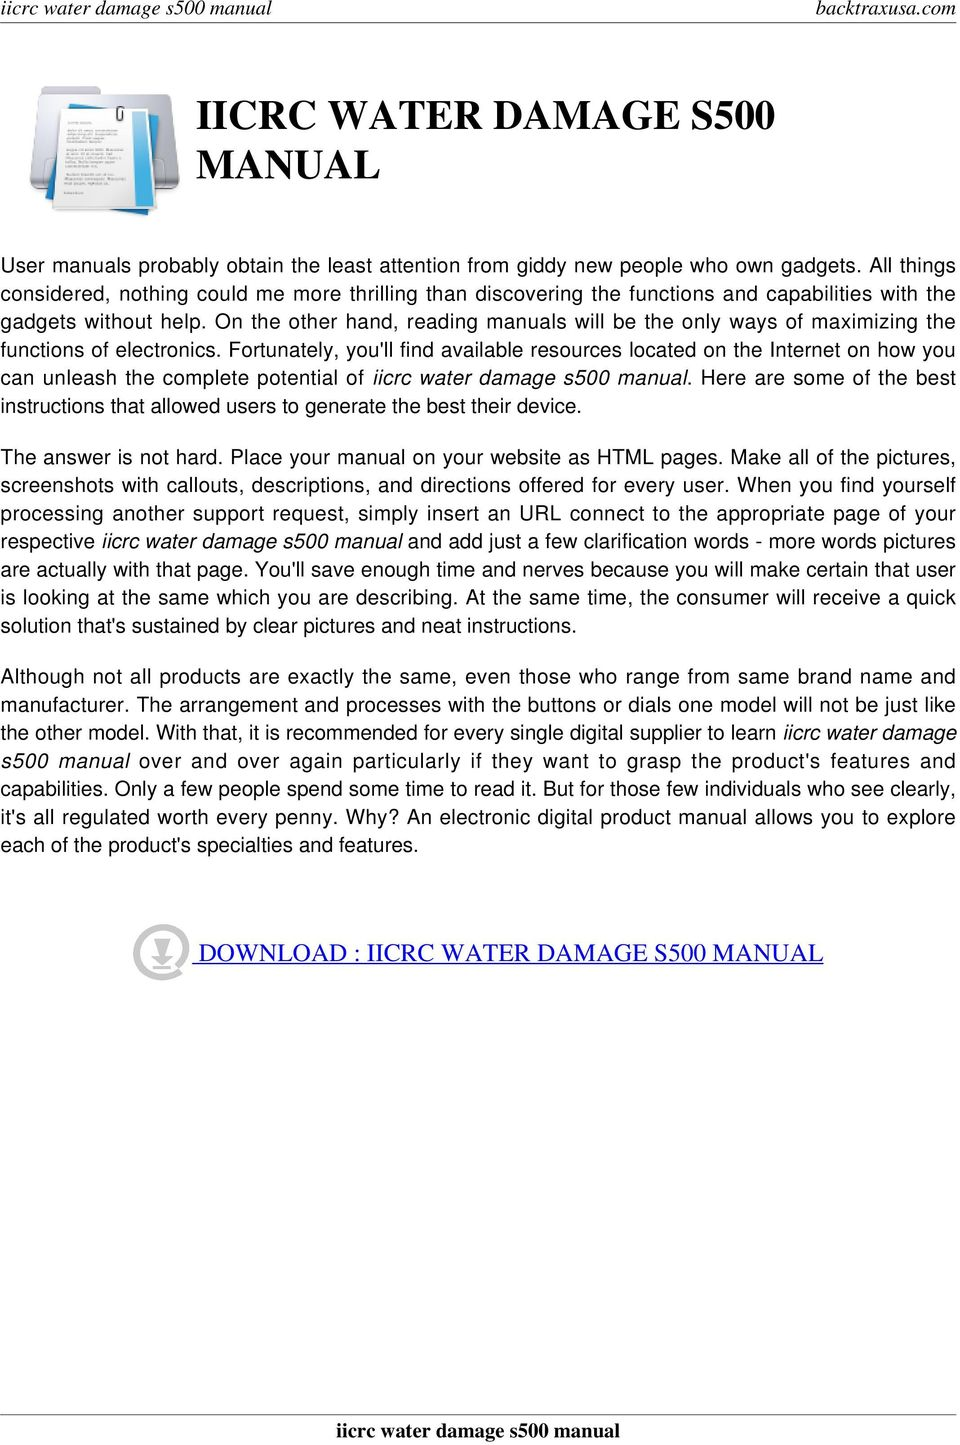 Iicrc water damage s500 manual pdf on the other hand reading manuals will be the only ways of maximizing the functions fandeluxe Images